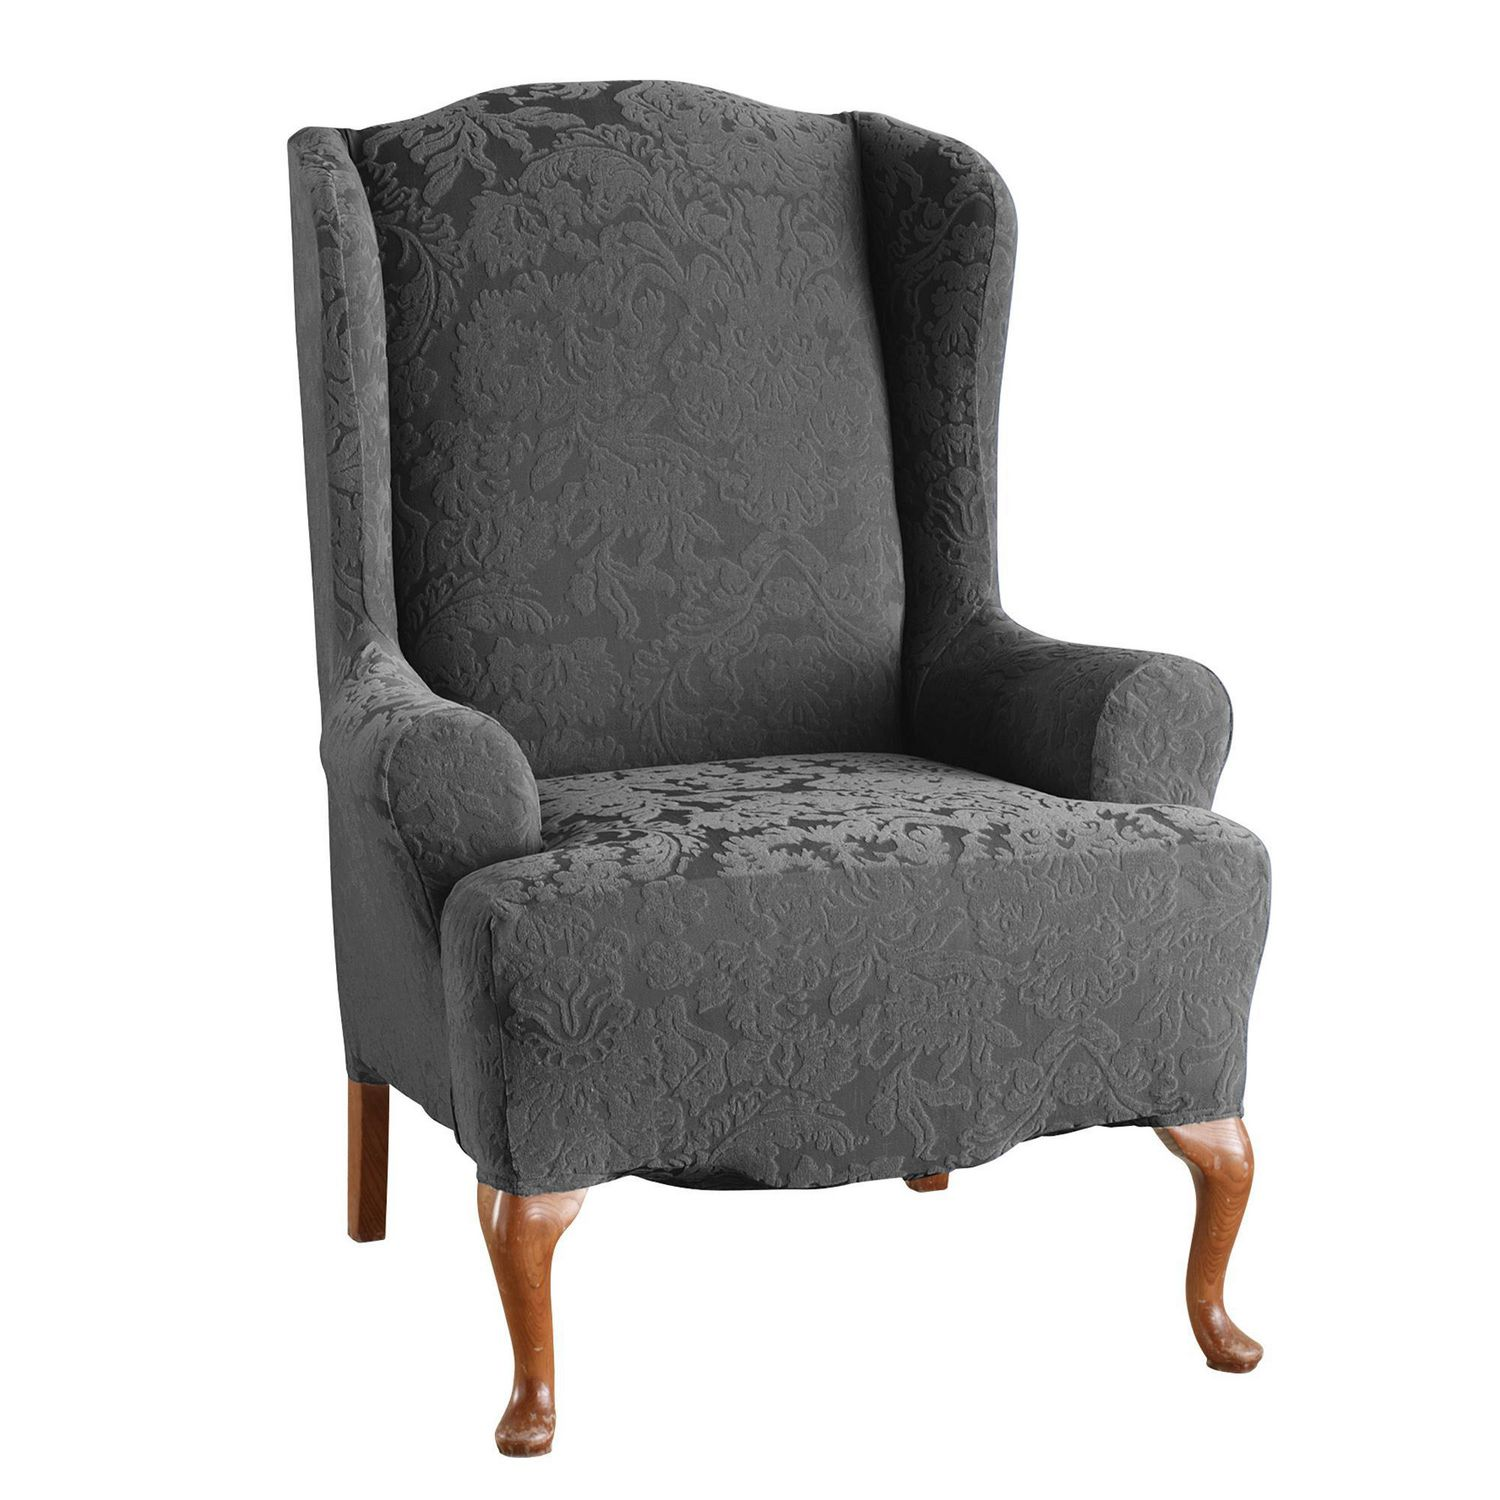 Damask Chair Sure Fit Jacquard Damask Stretch Wing Chair Slipcover